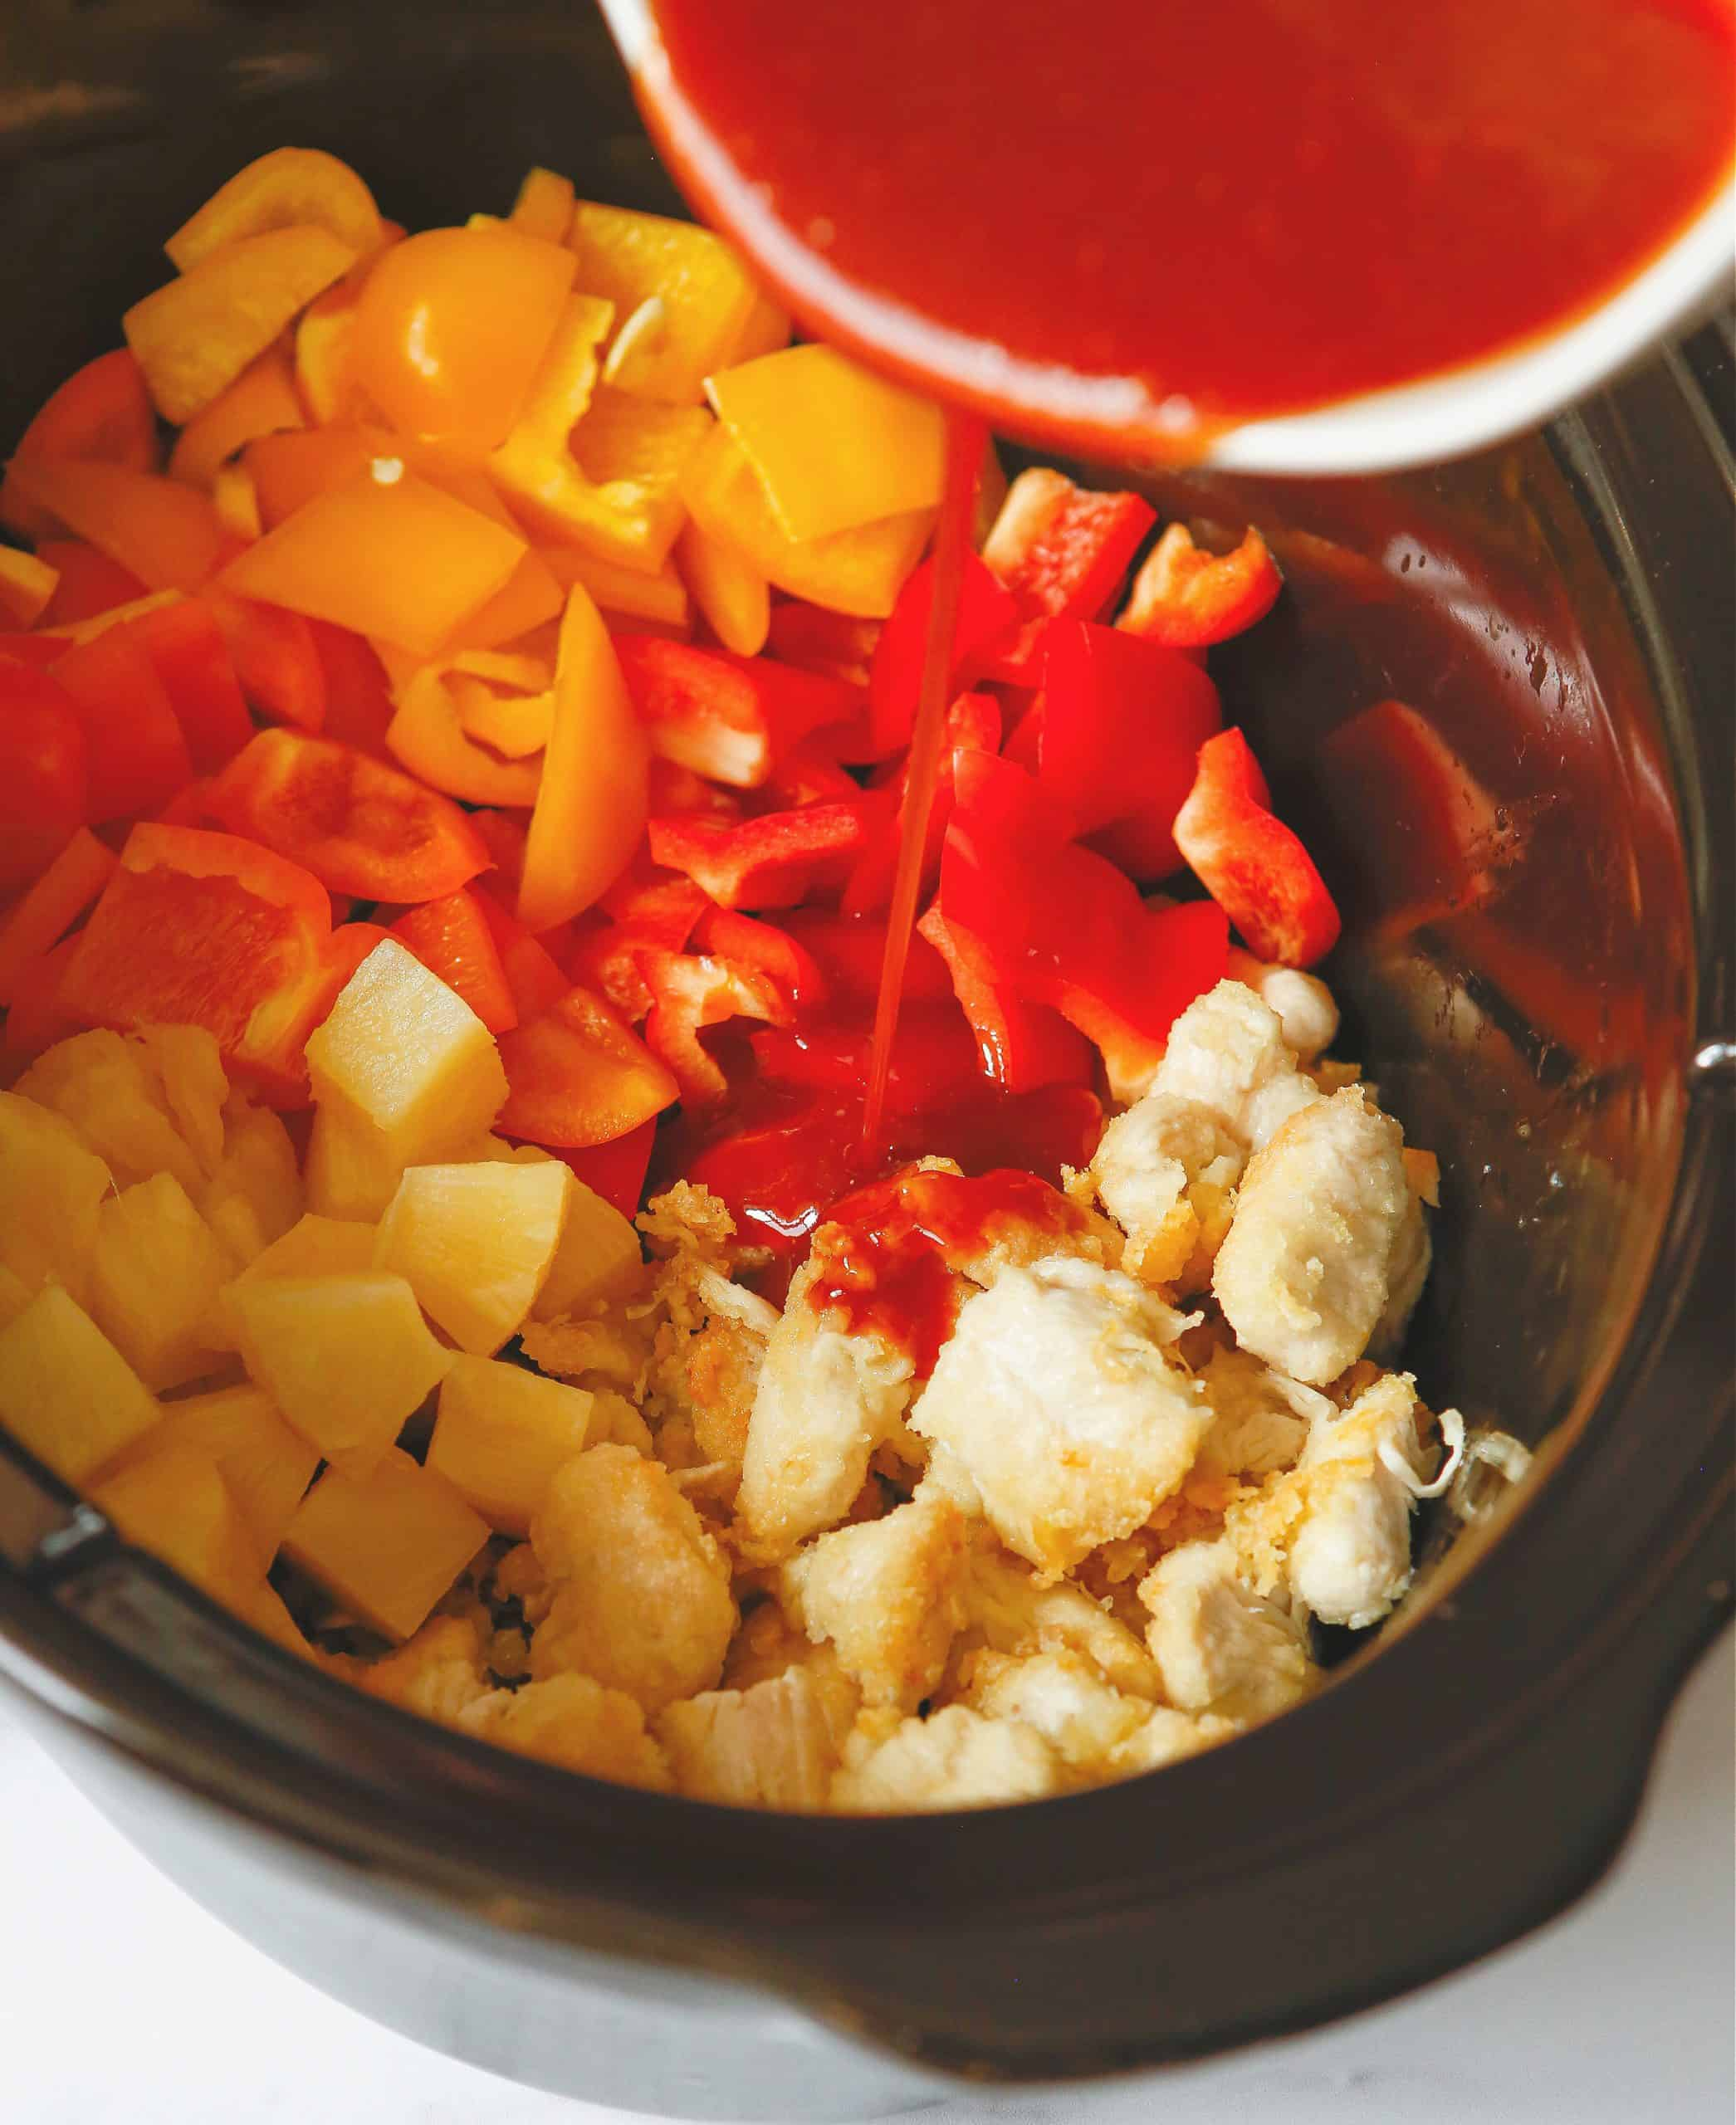 sweet and sour sauce poured over chicken and bell peppers in a slow cooker.